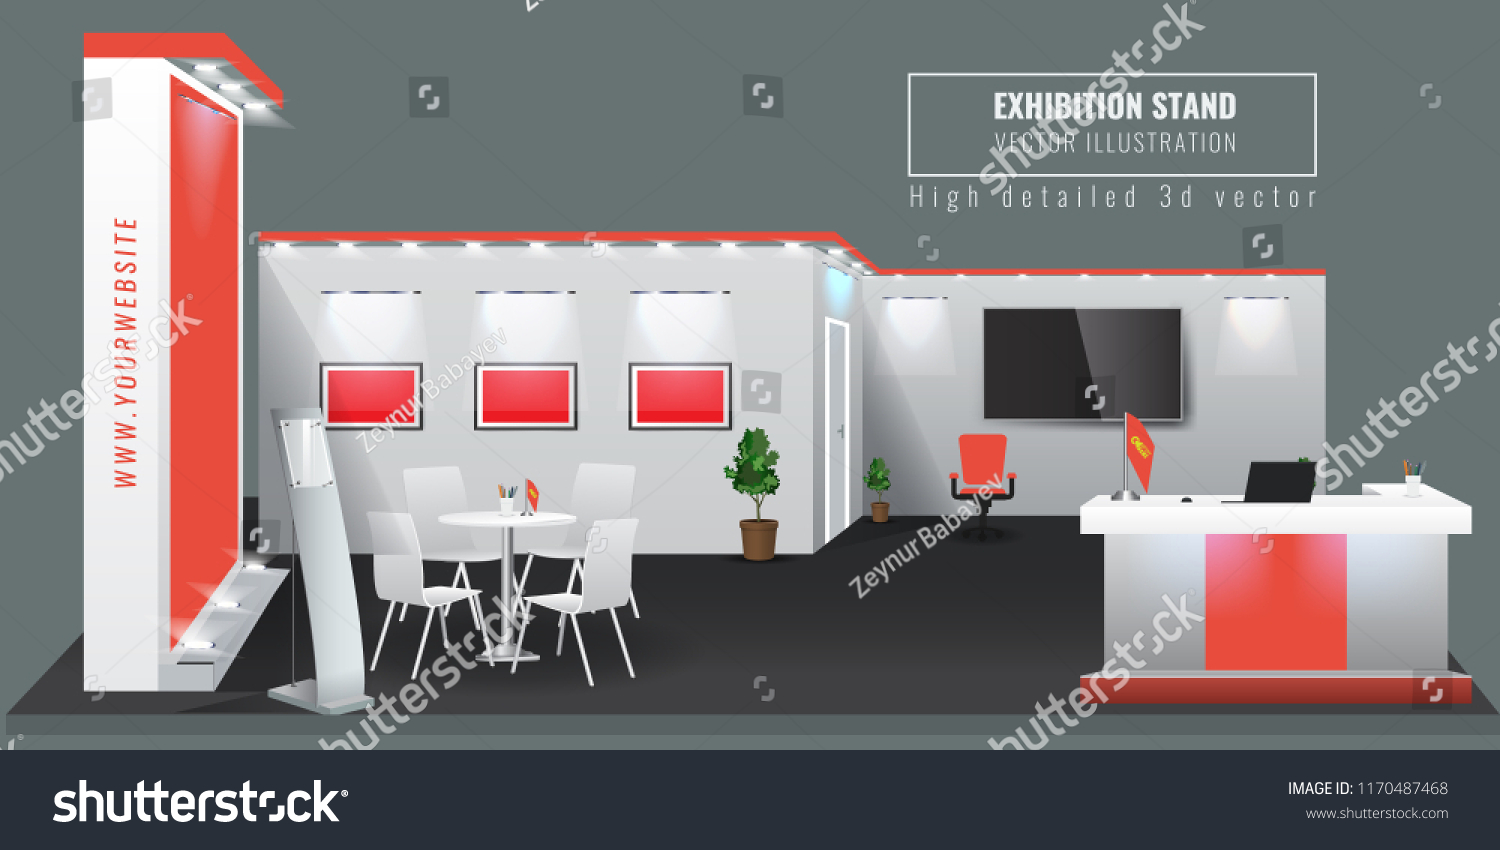 Exhibition Stall Agreement : Exhibition stall fabrication kiosk pavilion trade fair stall clickbd